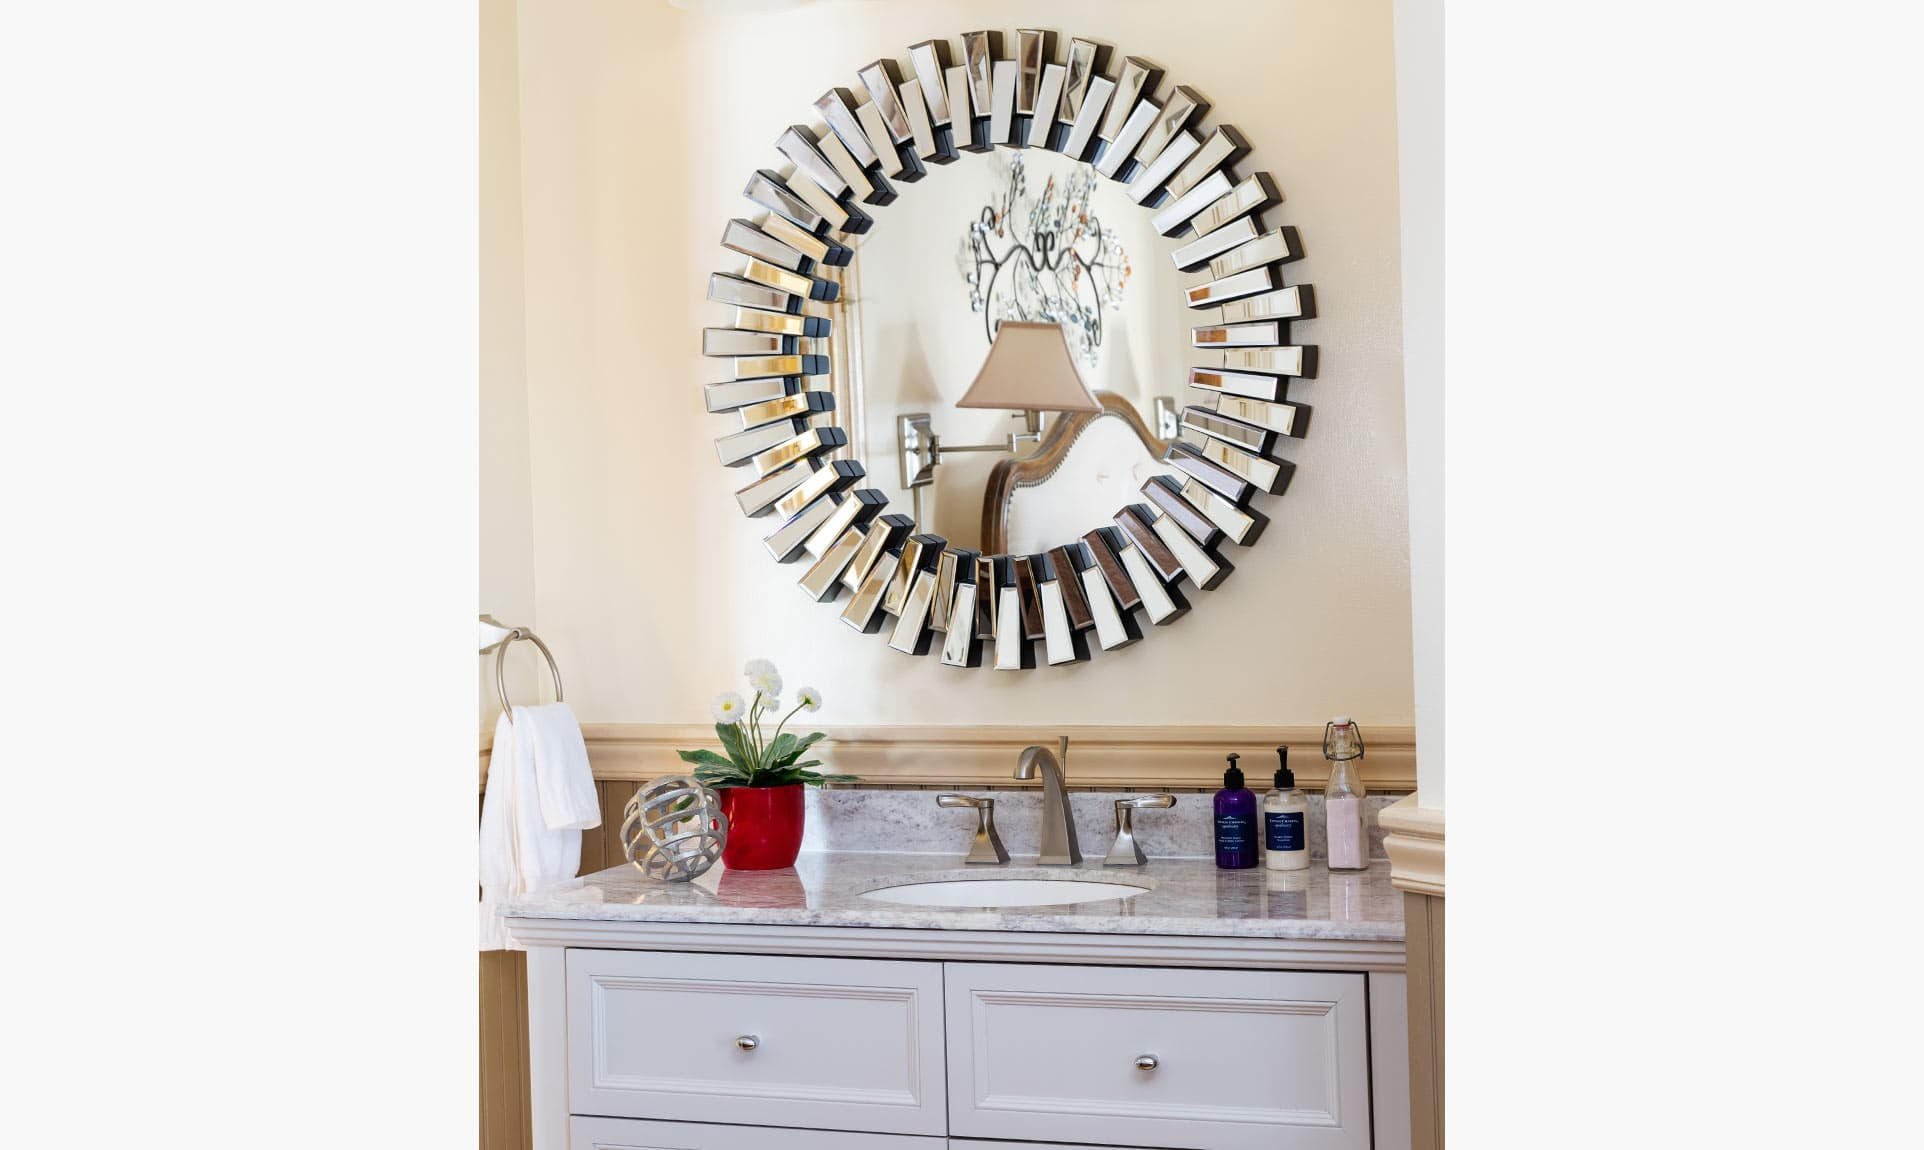 Vanity with round mirror above in Provence Room